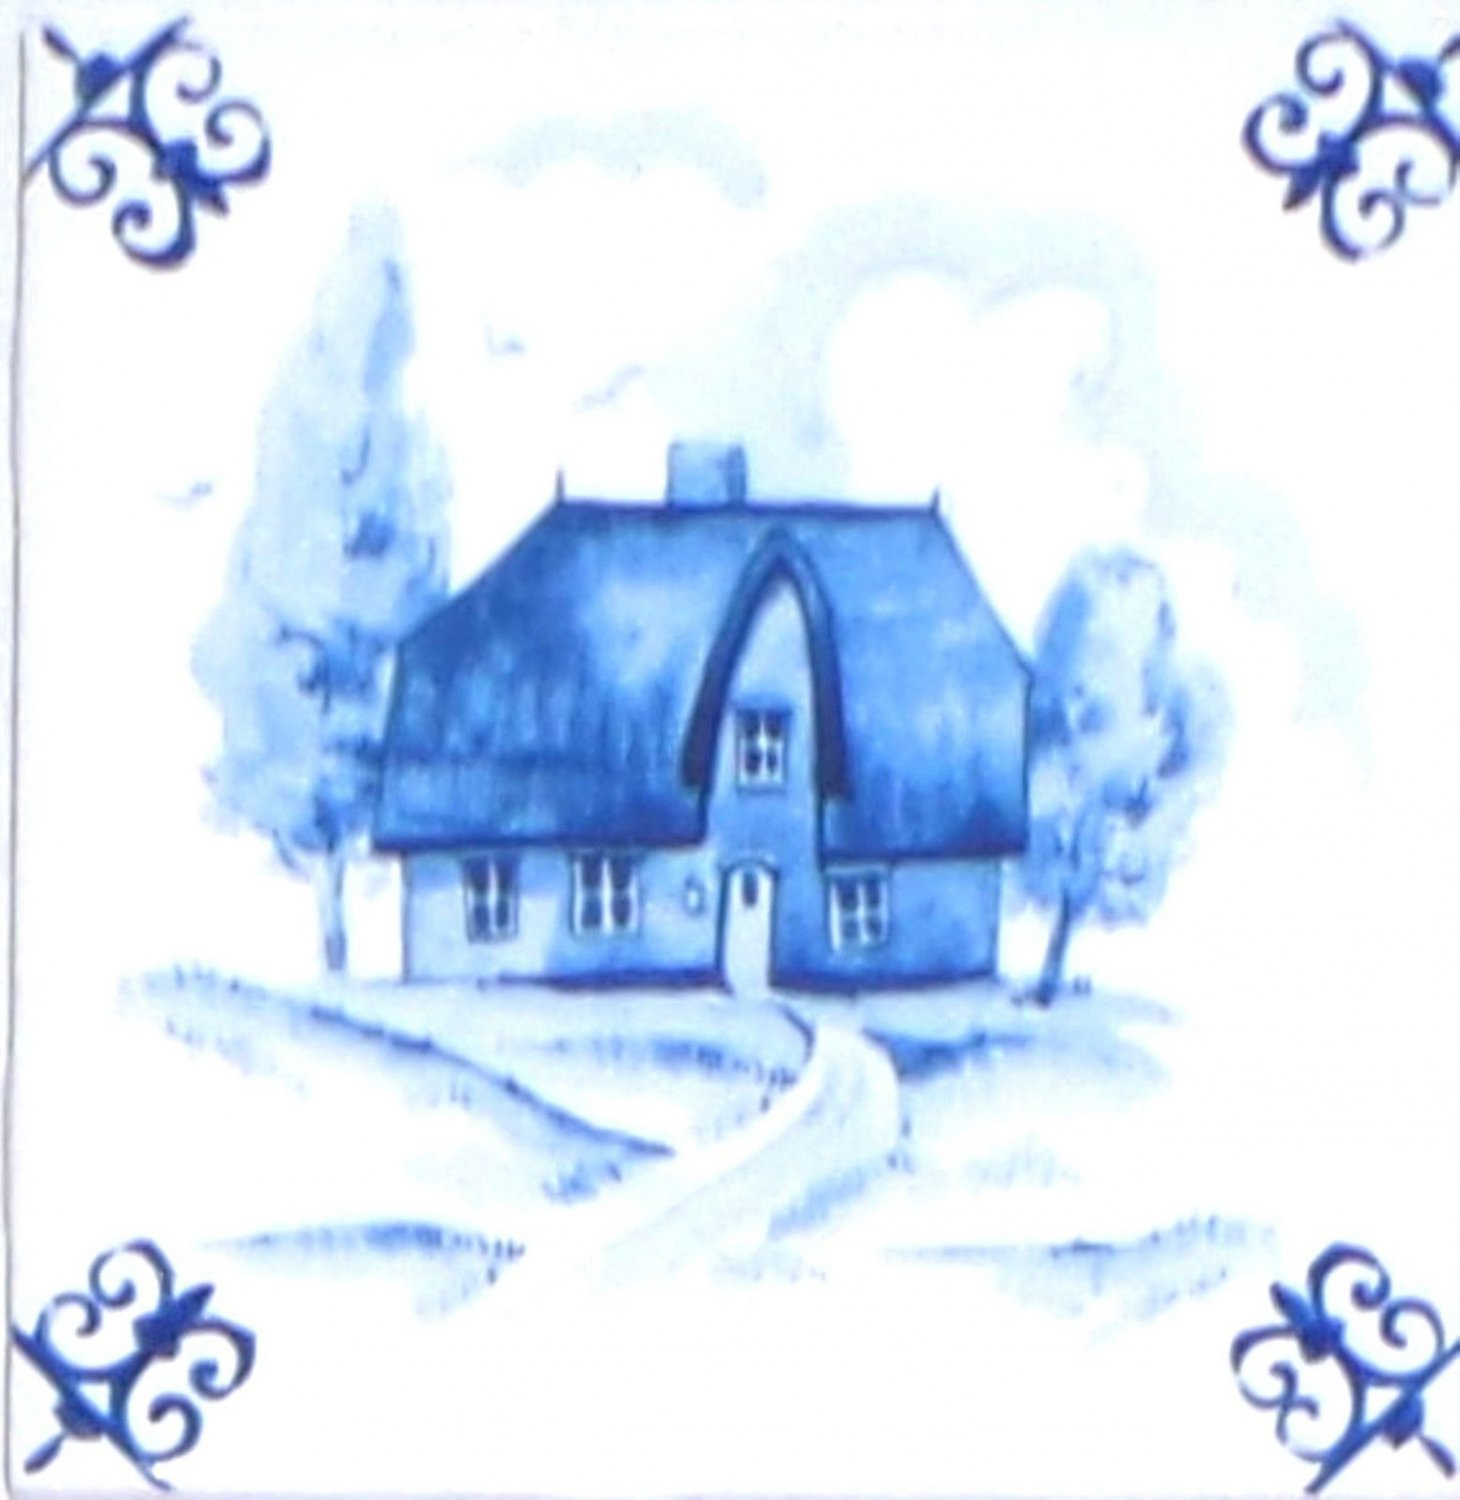 Blue House Ox Tail Ceramic Tile Accent Kiln Fired Back Splash Delft 4.25""